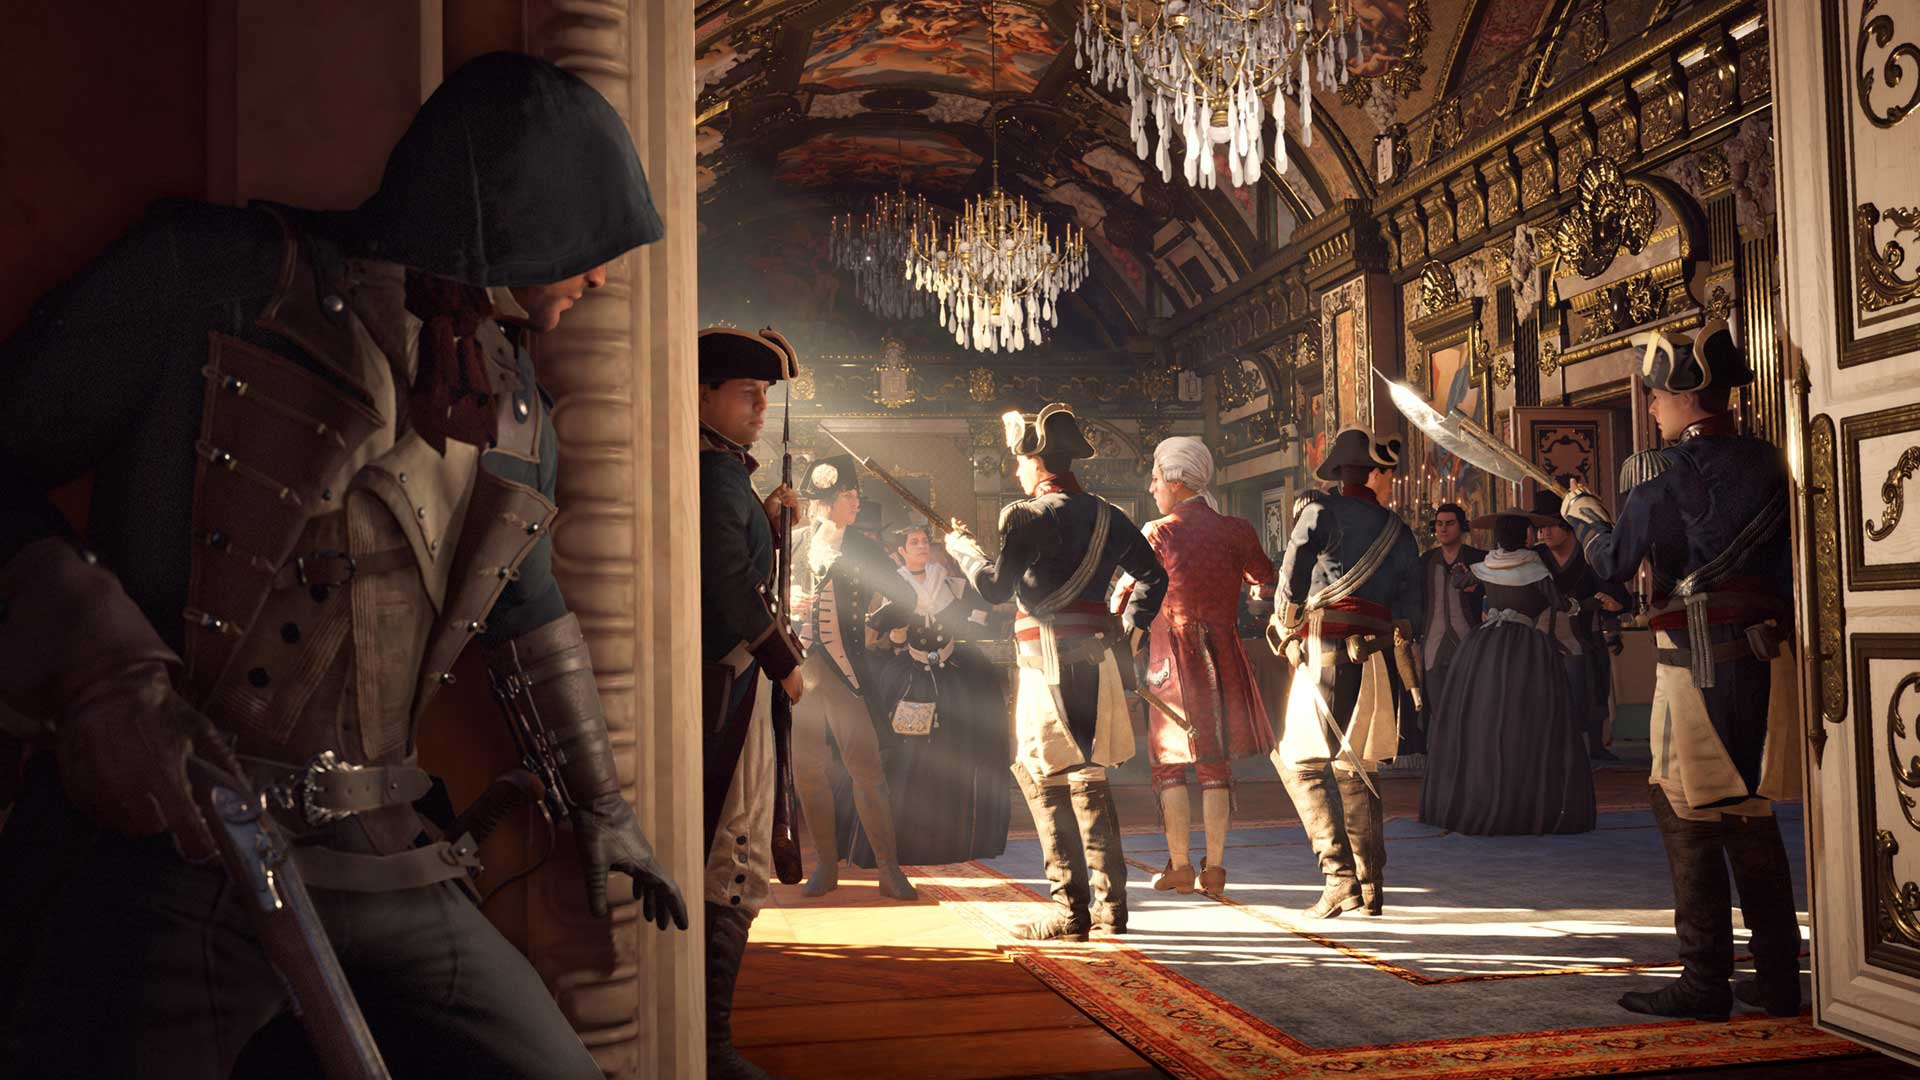 assassinand 39 s creed unity gameplay. assassin\u0027s creed unity - stealth is key screenshots assassinand 39 s gameplay l